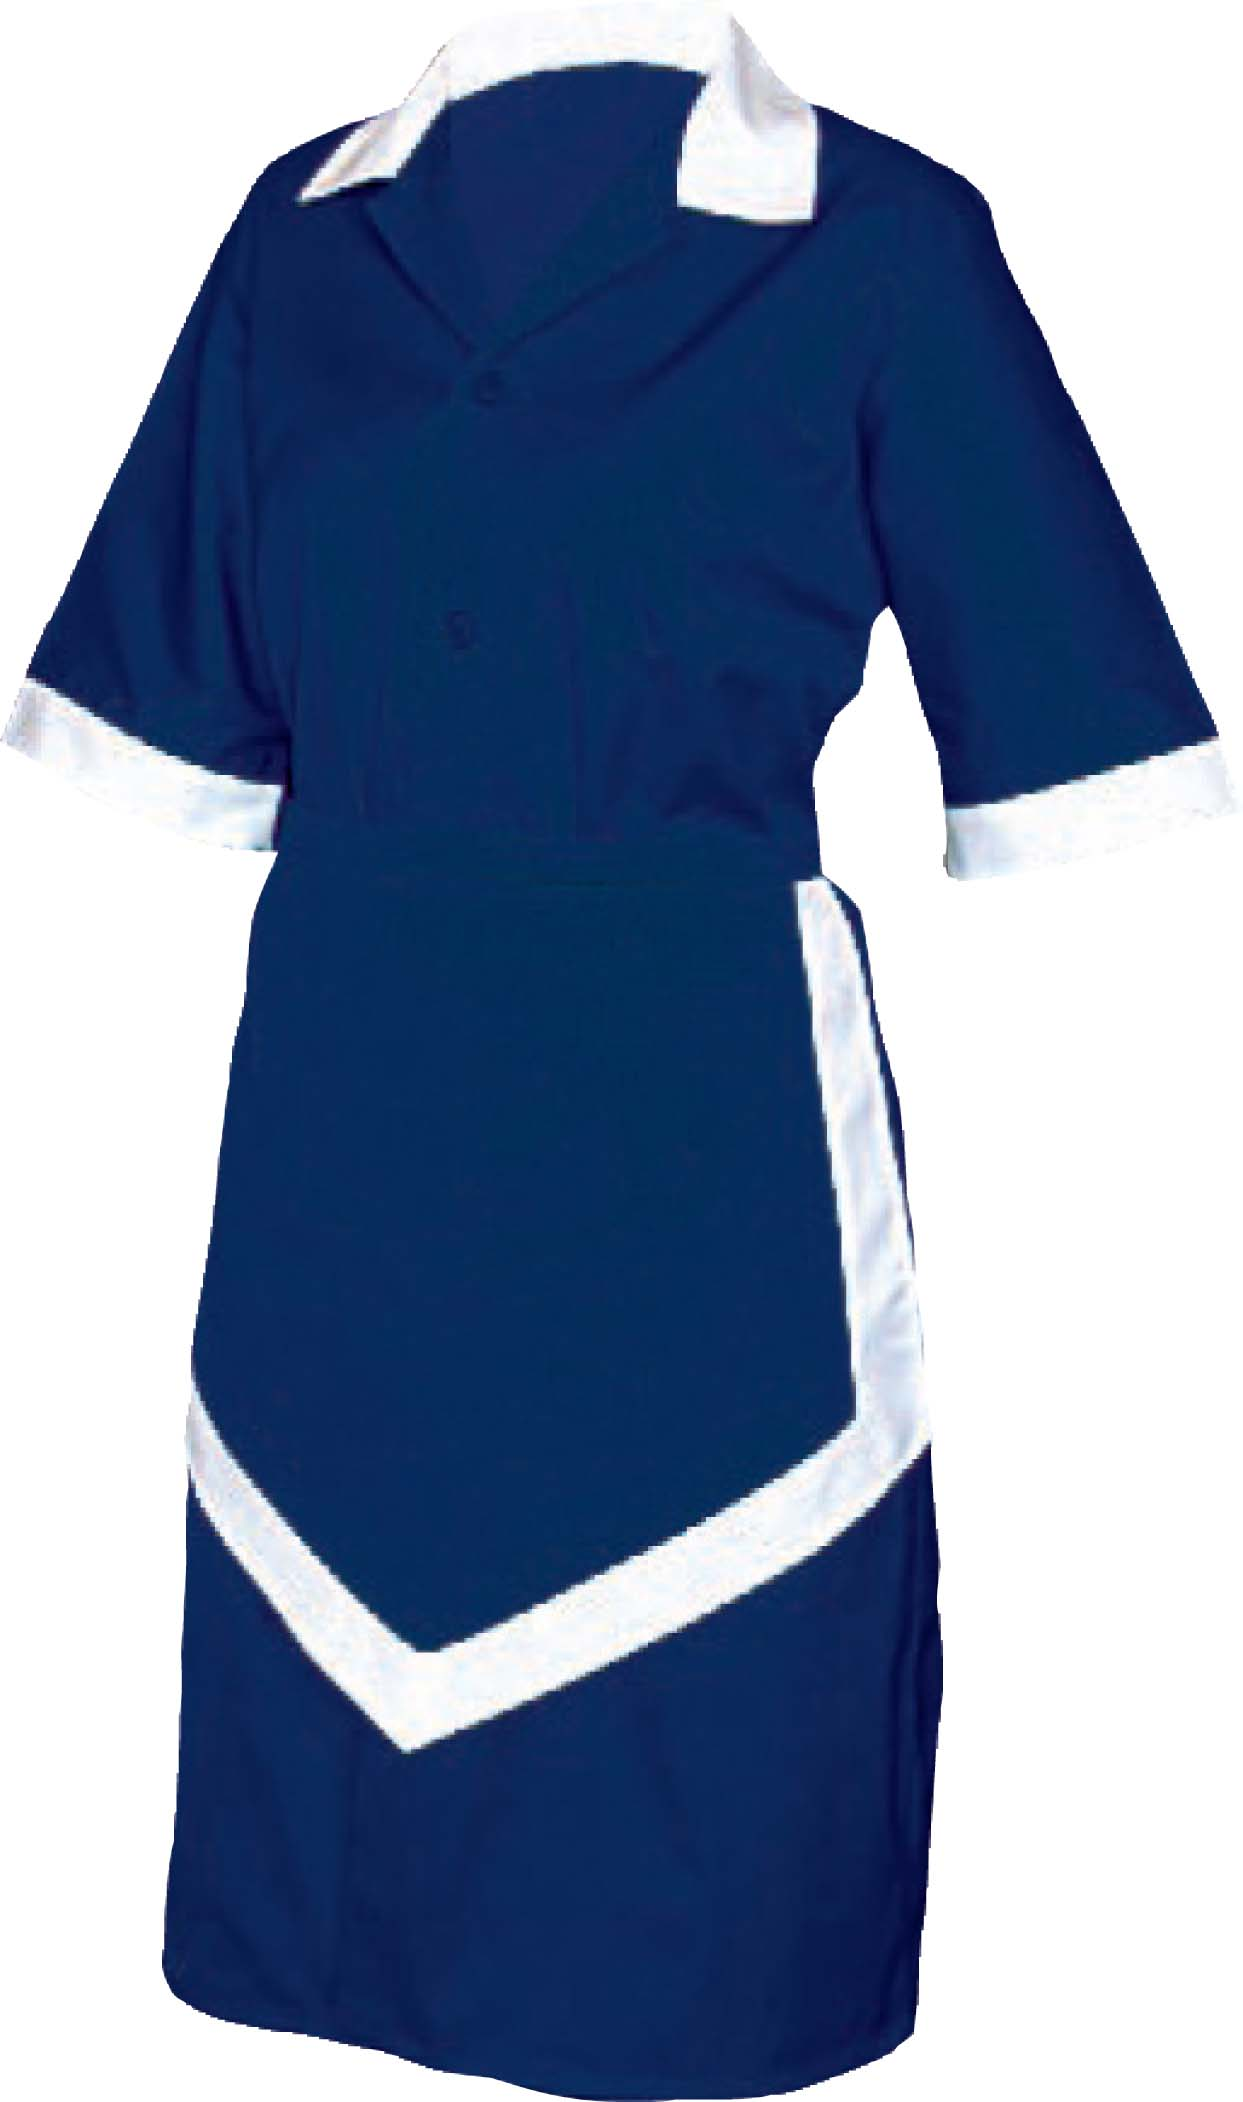 LADIES HOUSEKEEPING 3PC- NAVY AND WHITE - LARGE